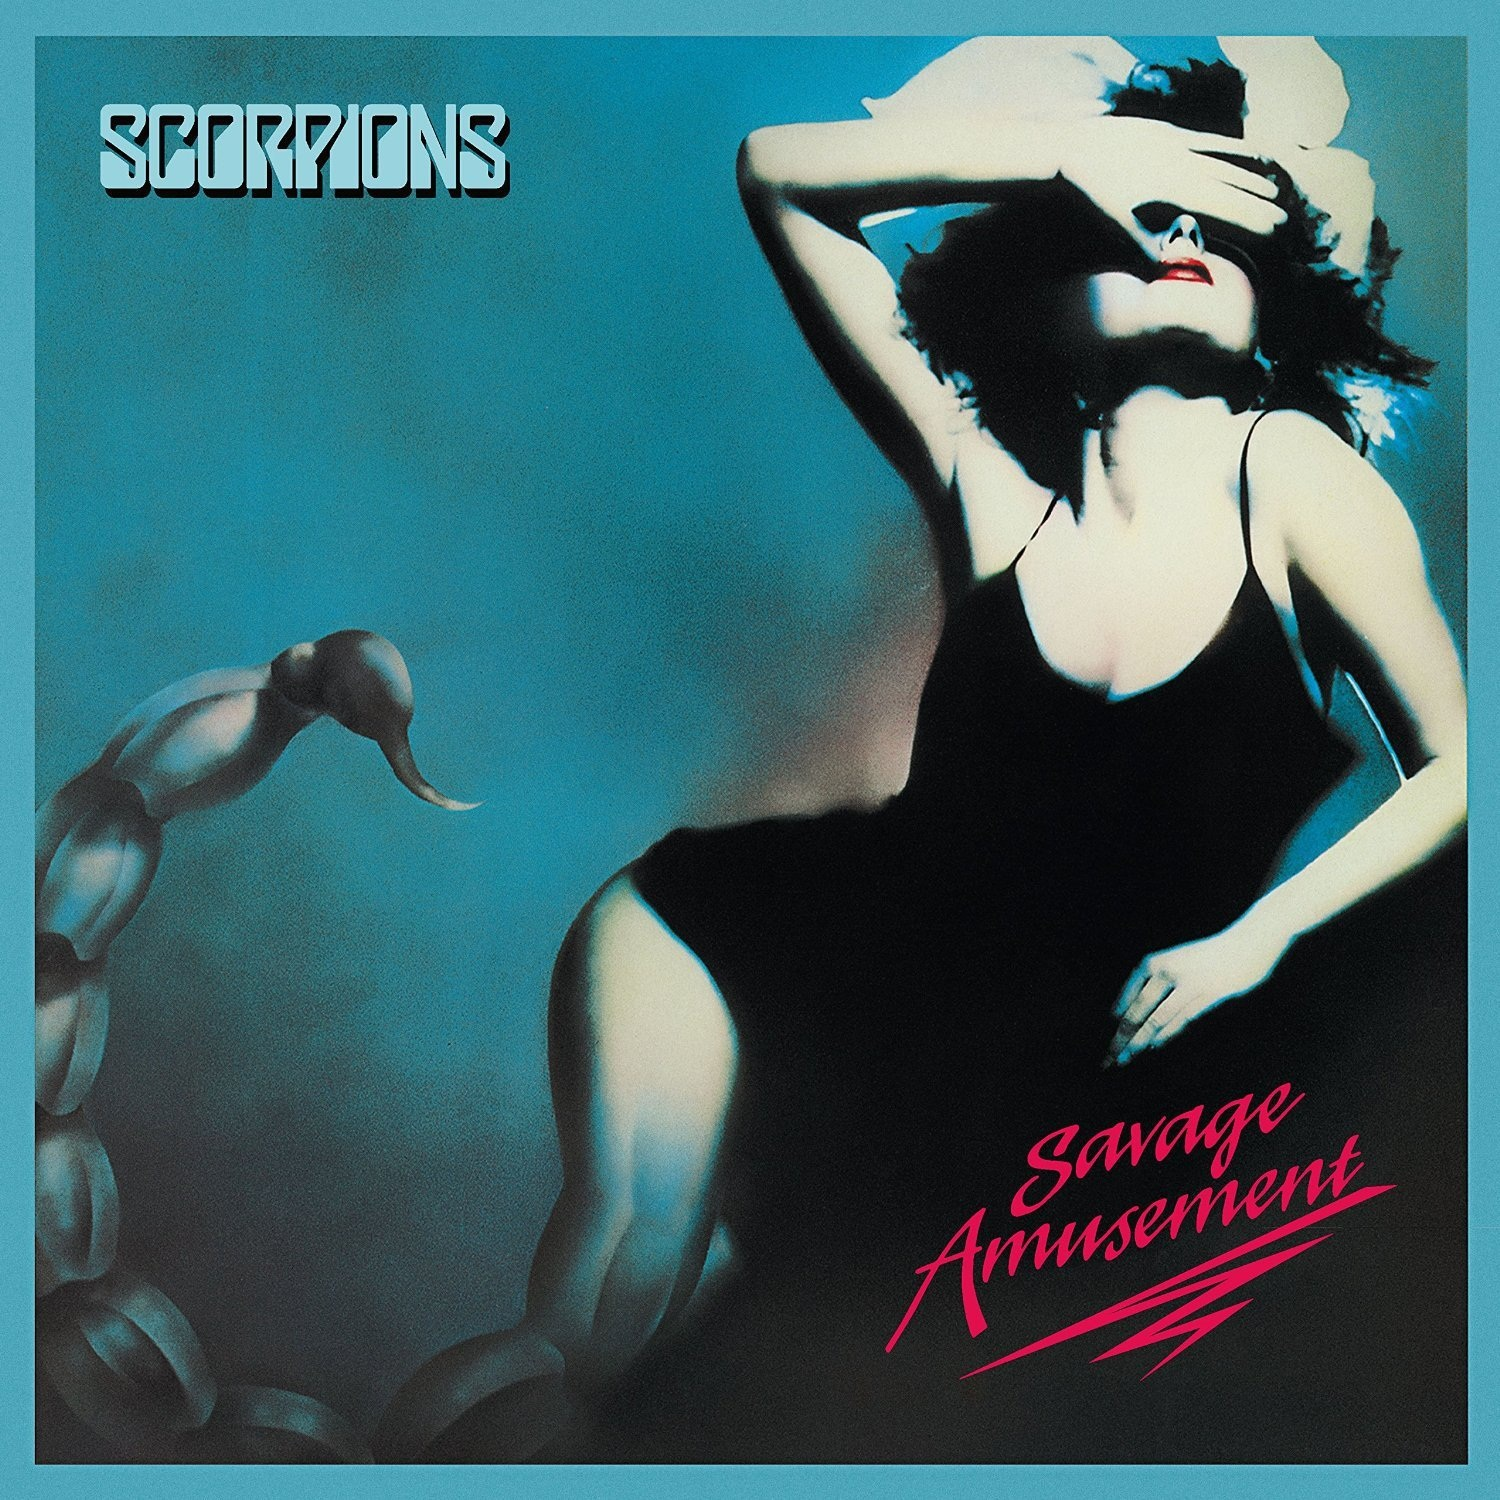 Scorpions: Savage Amusement (CD + DVD)